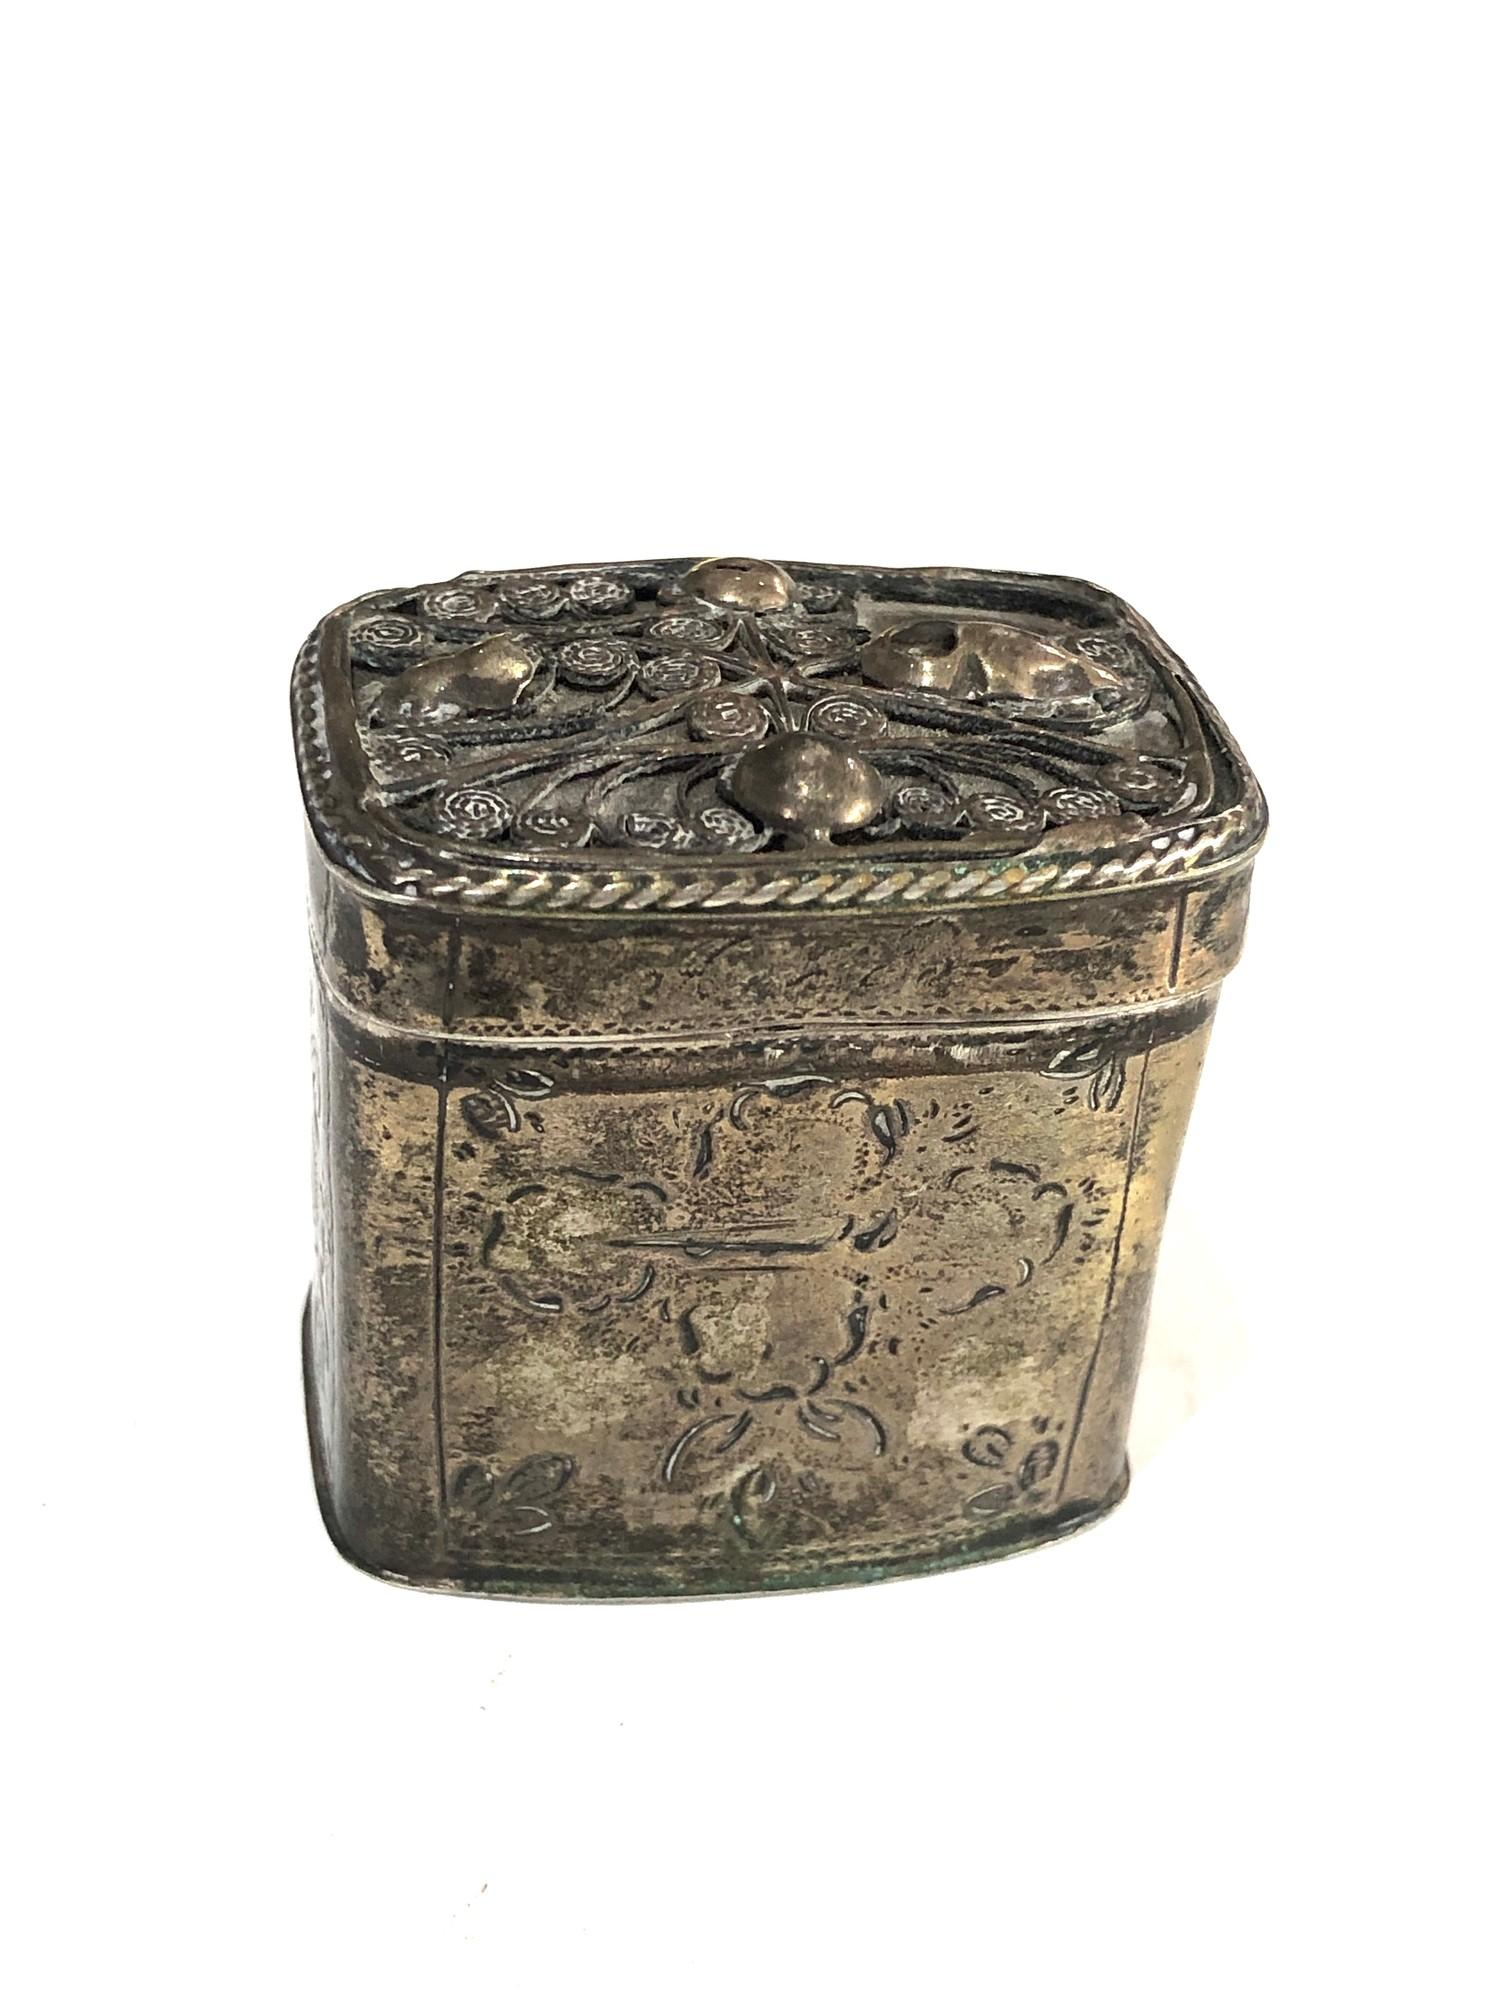 Antique Dutch silver peppermint box measures approx 4cm high and 4cm by 3cm age related wear dent